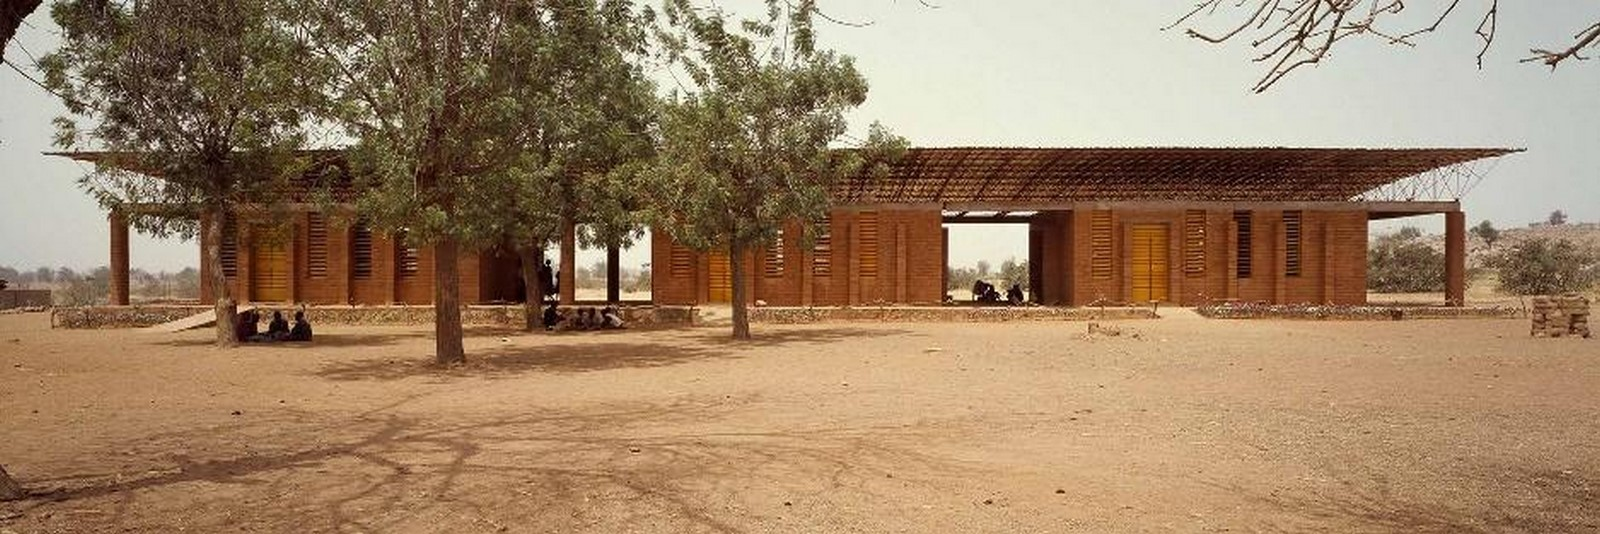 Primary school in Gando by Kere Architecture- Sheet1